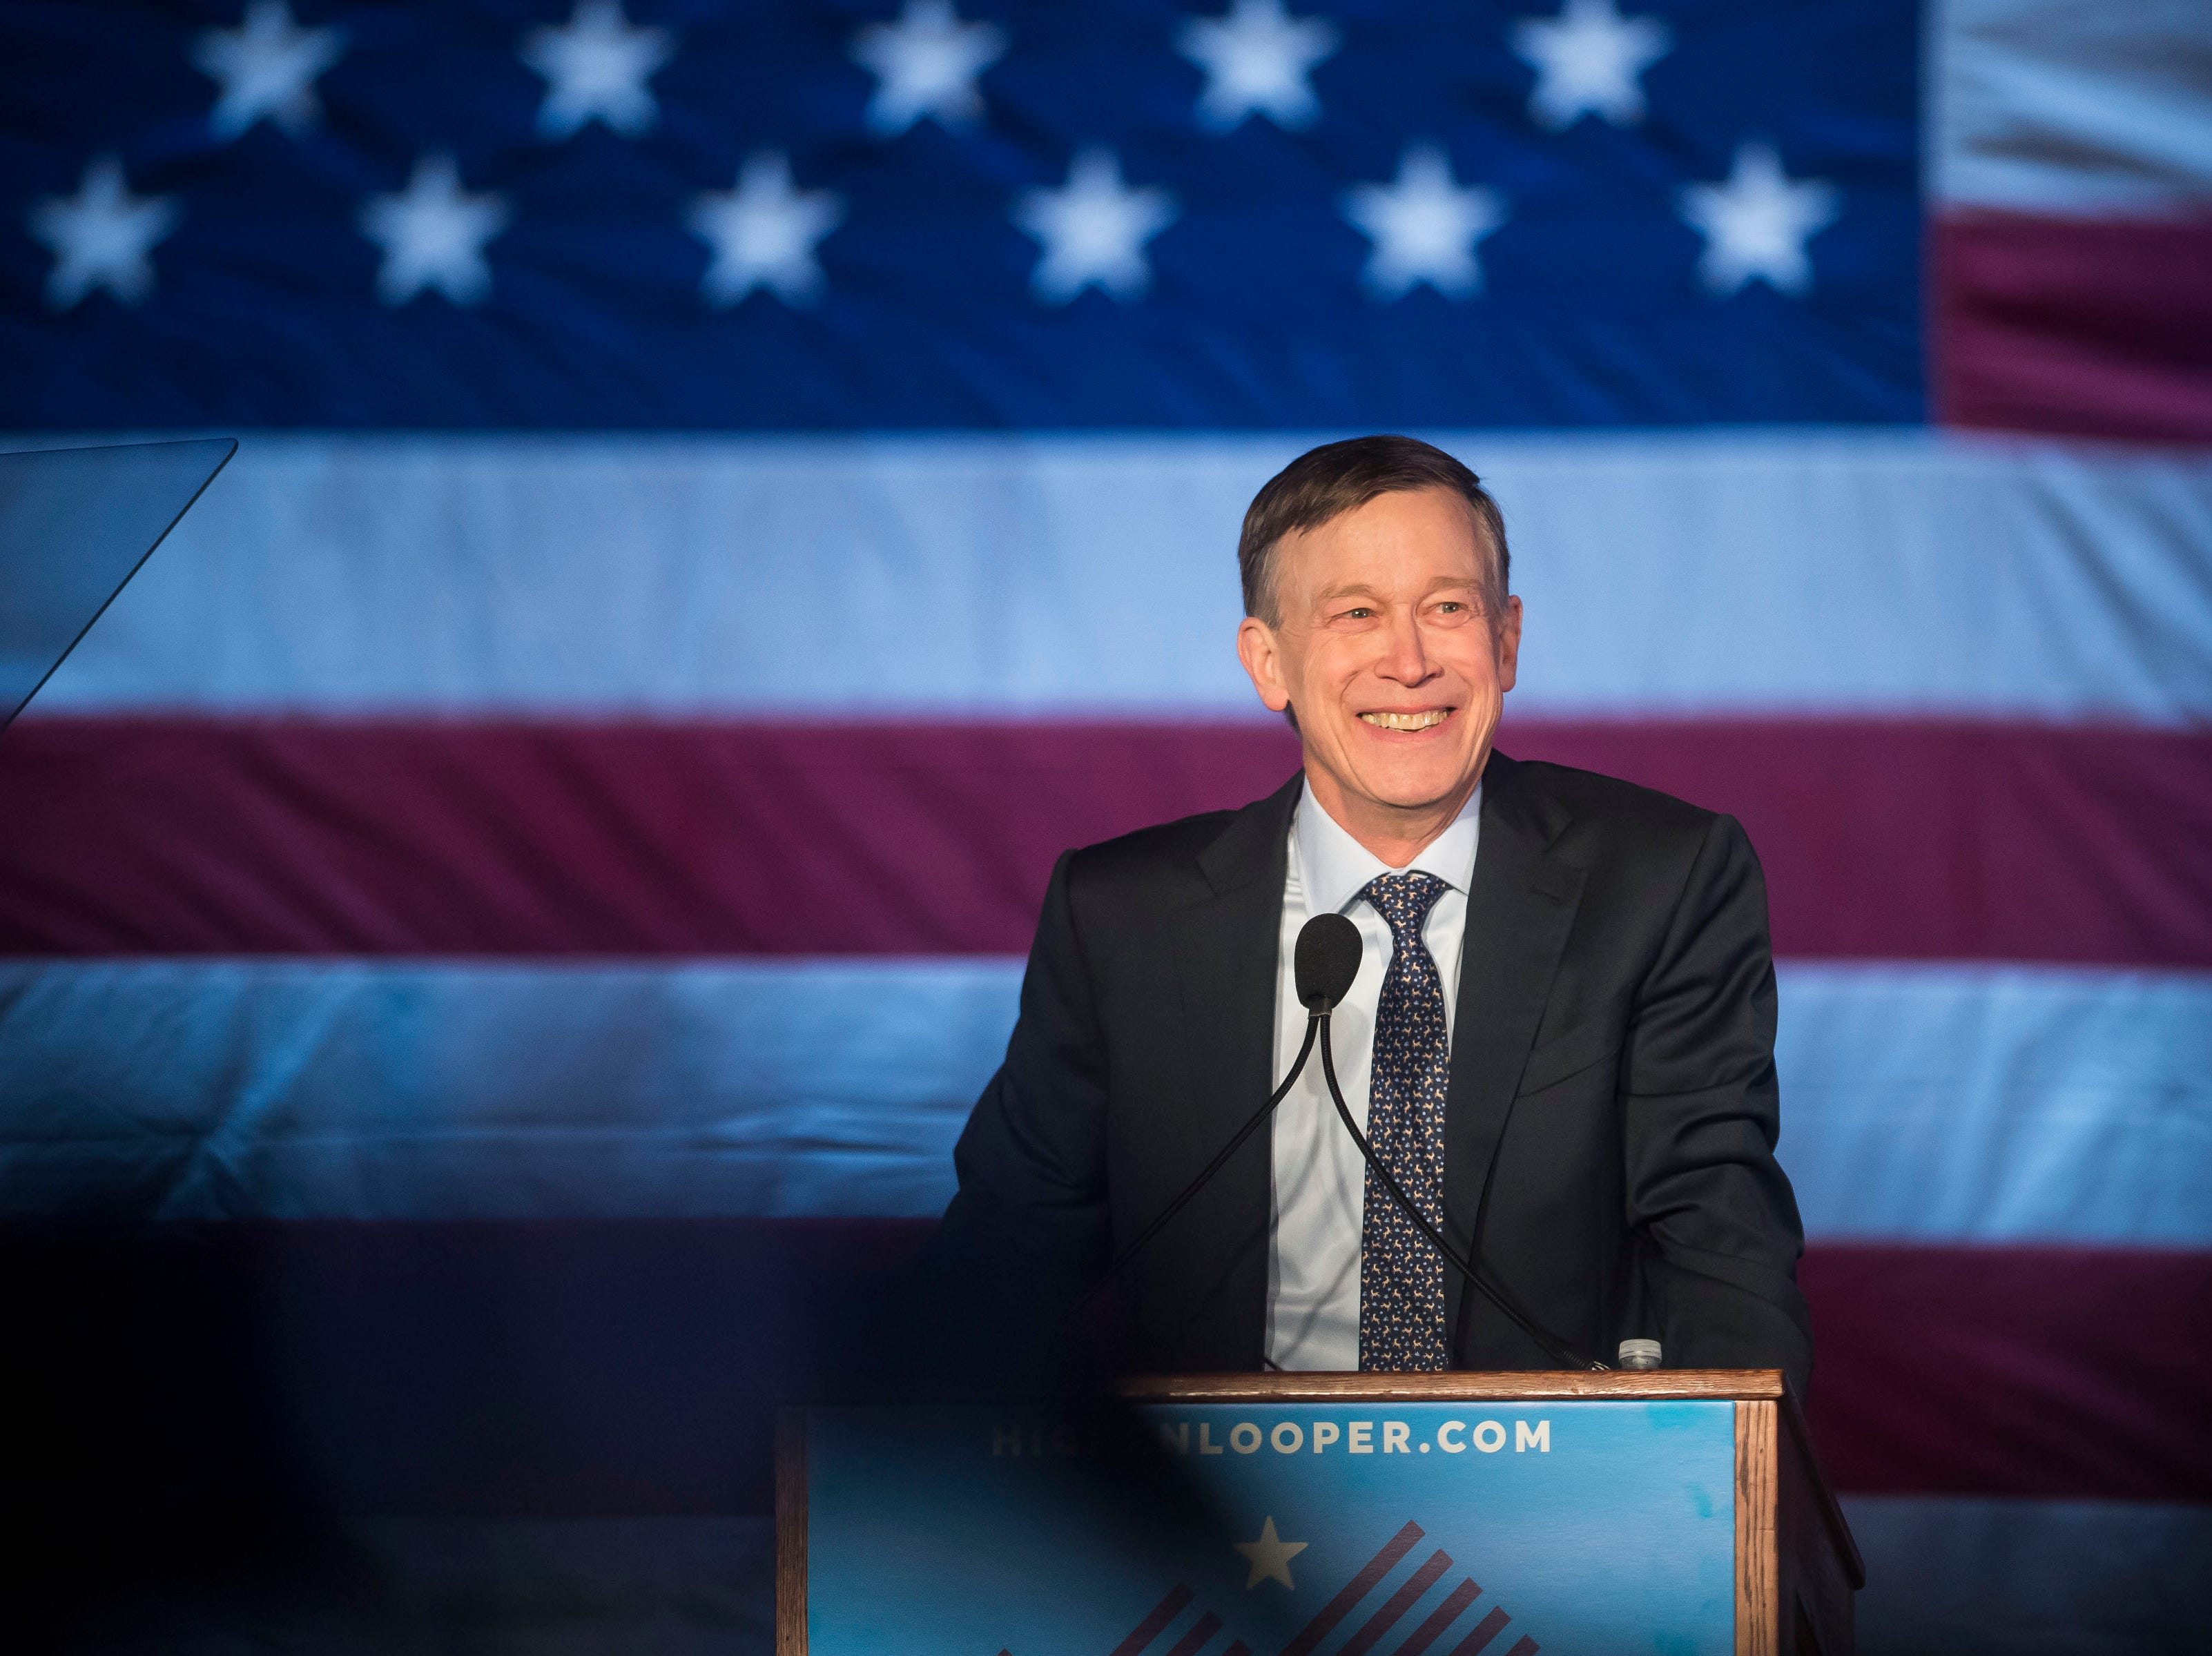 Former Colorado governor John Hickenlooper smiles before he begins his speech at his presidential campaign kick-off rally on Thursday, March 7, 2019, at the Greek Ampitheatre in Civic Center Park in Denver, Colo.